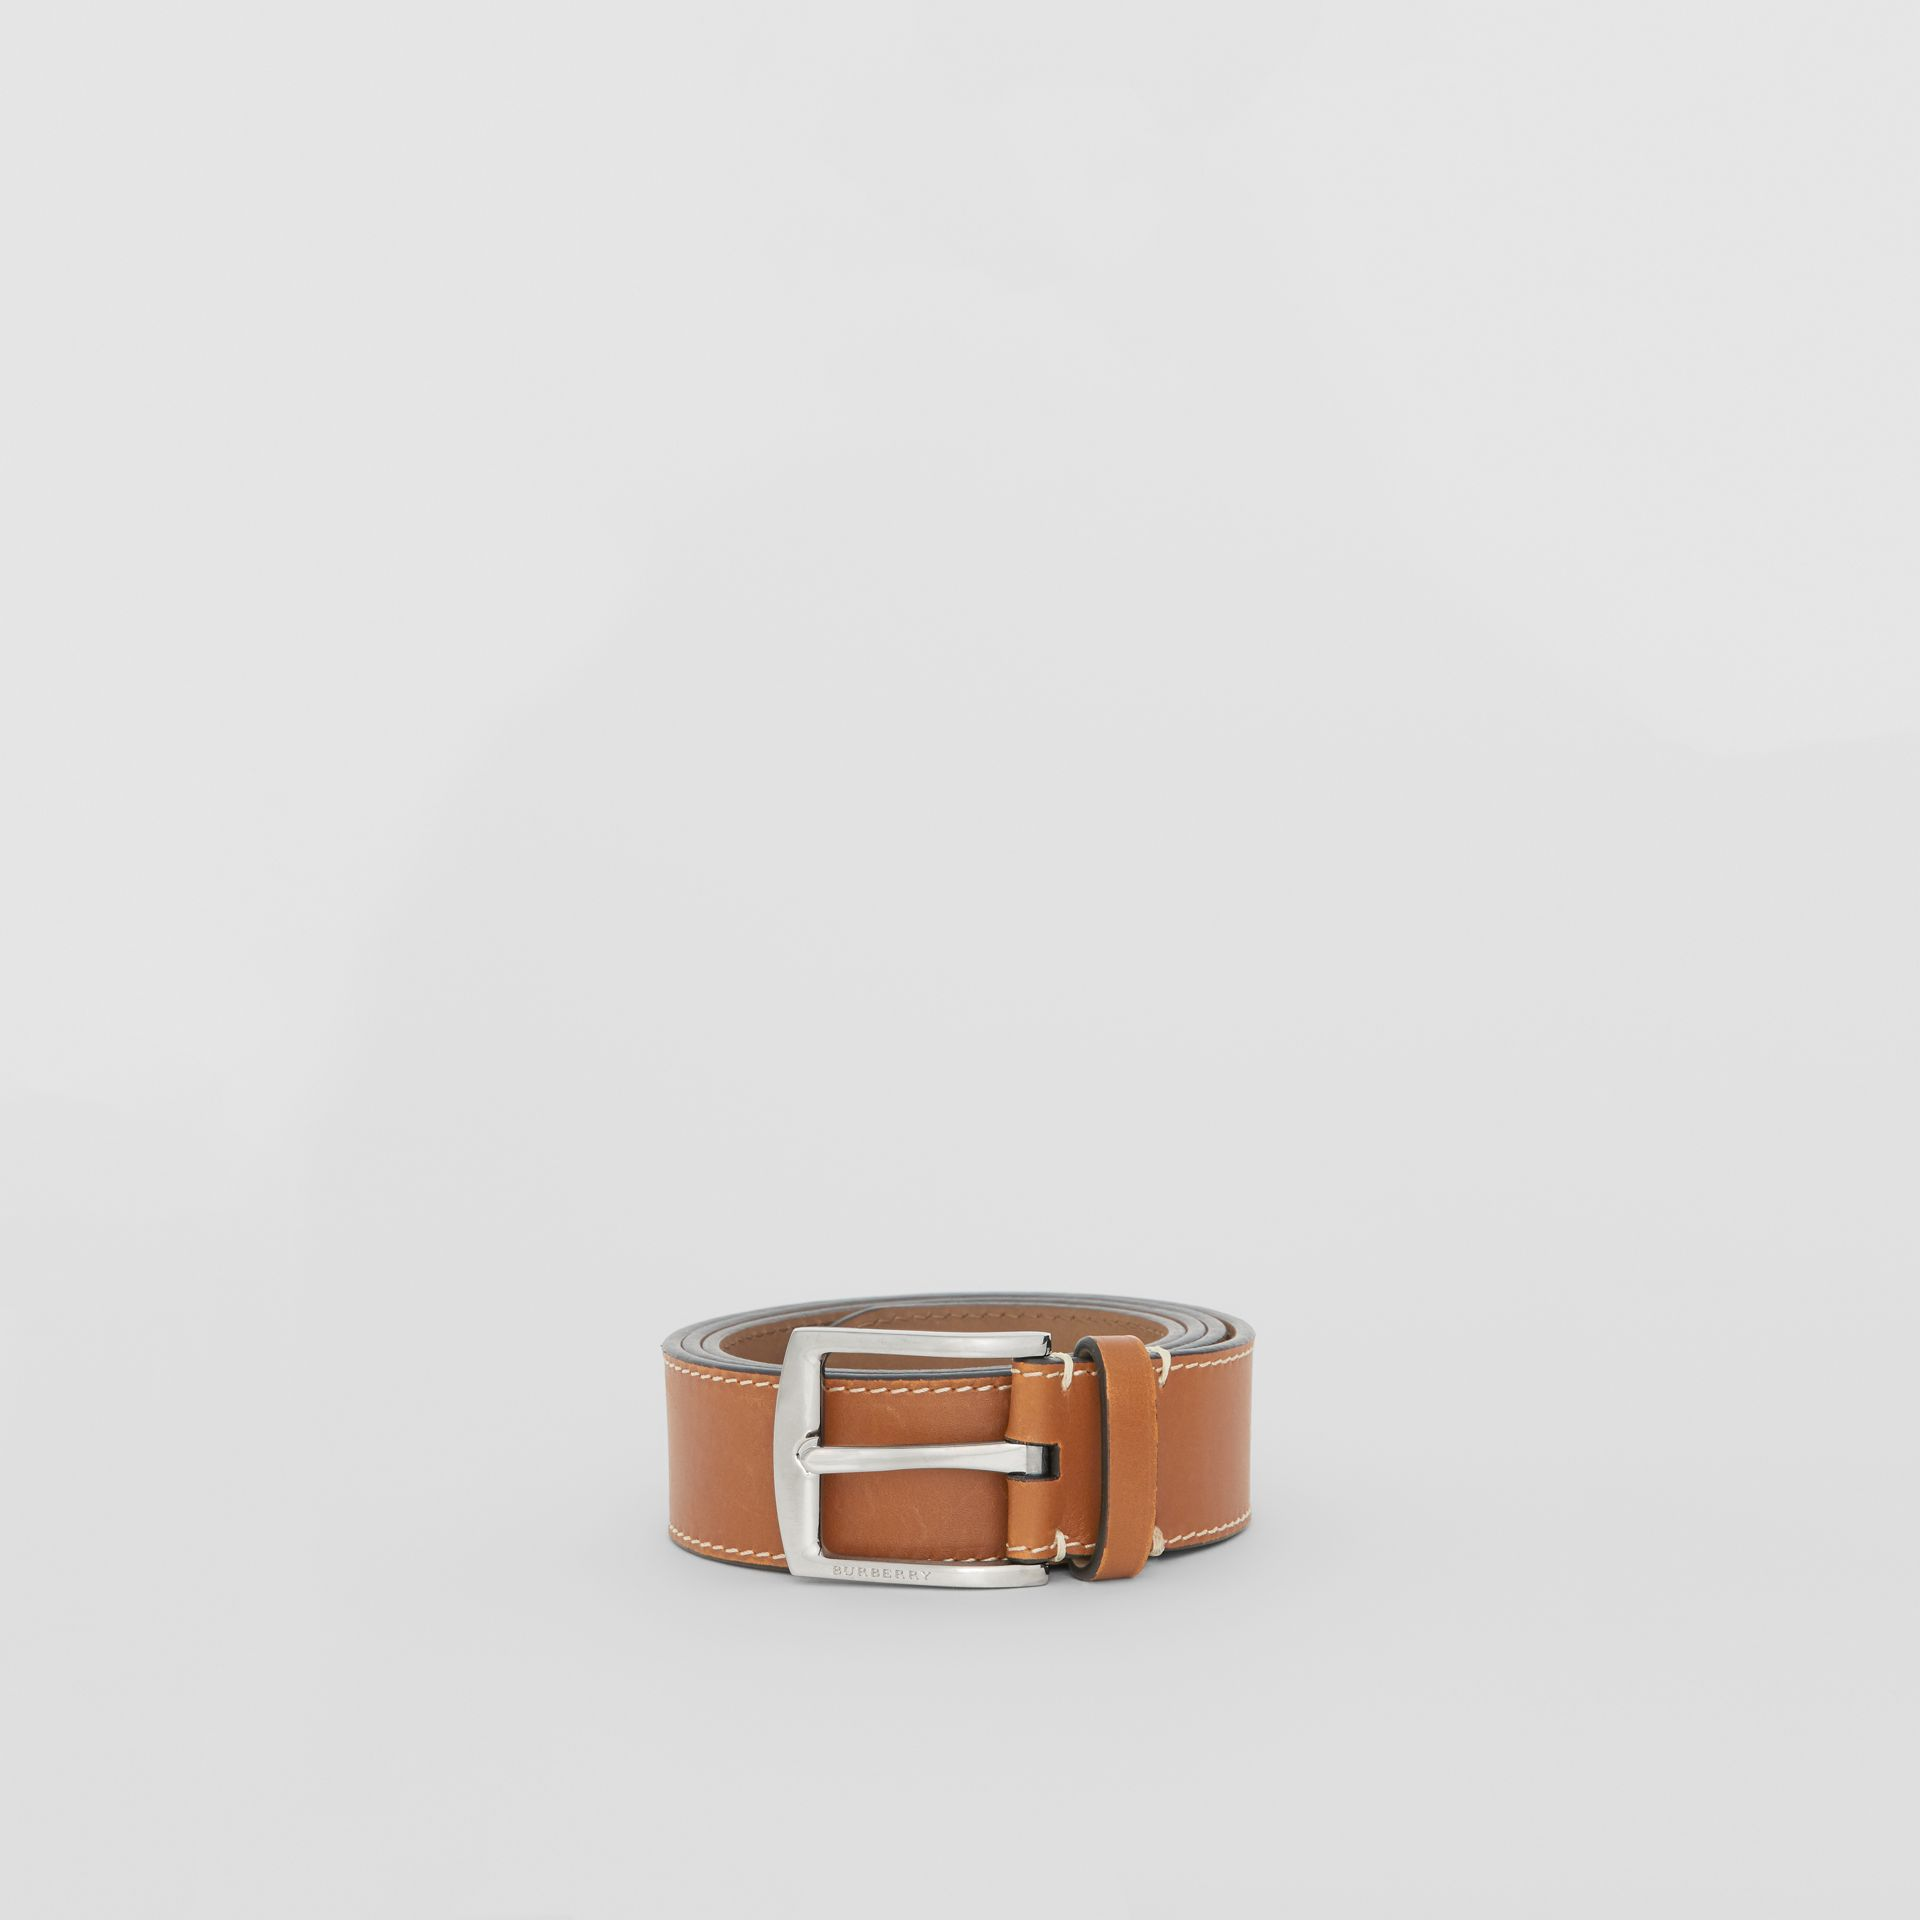 Topstitched Leather Belt in Tan - Men | Burberry United States - gallery image 3